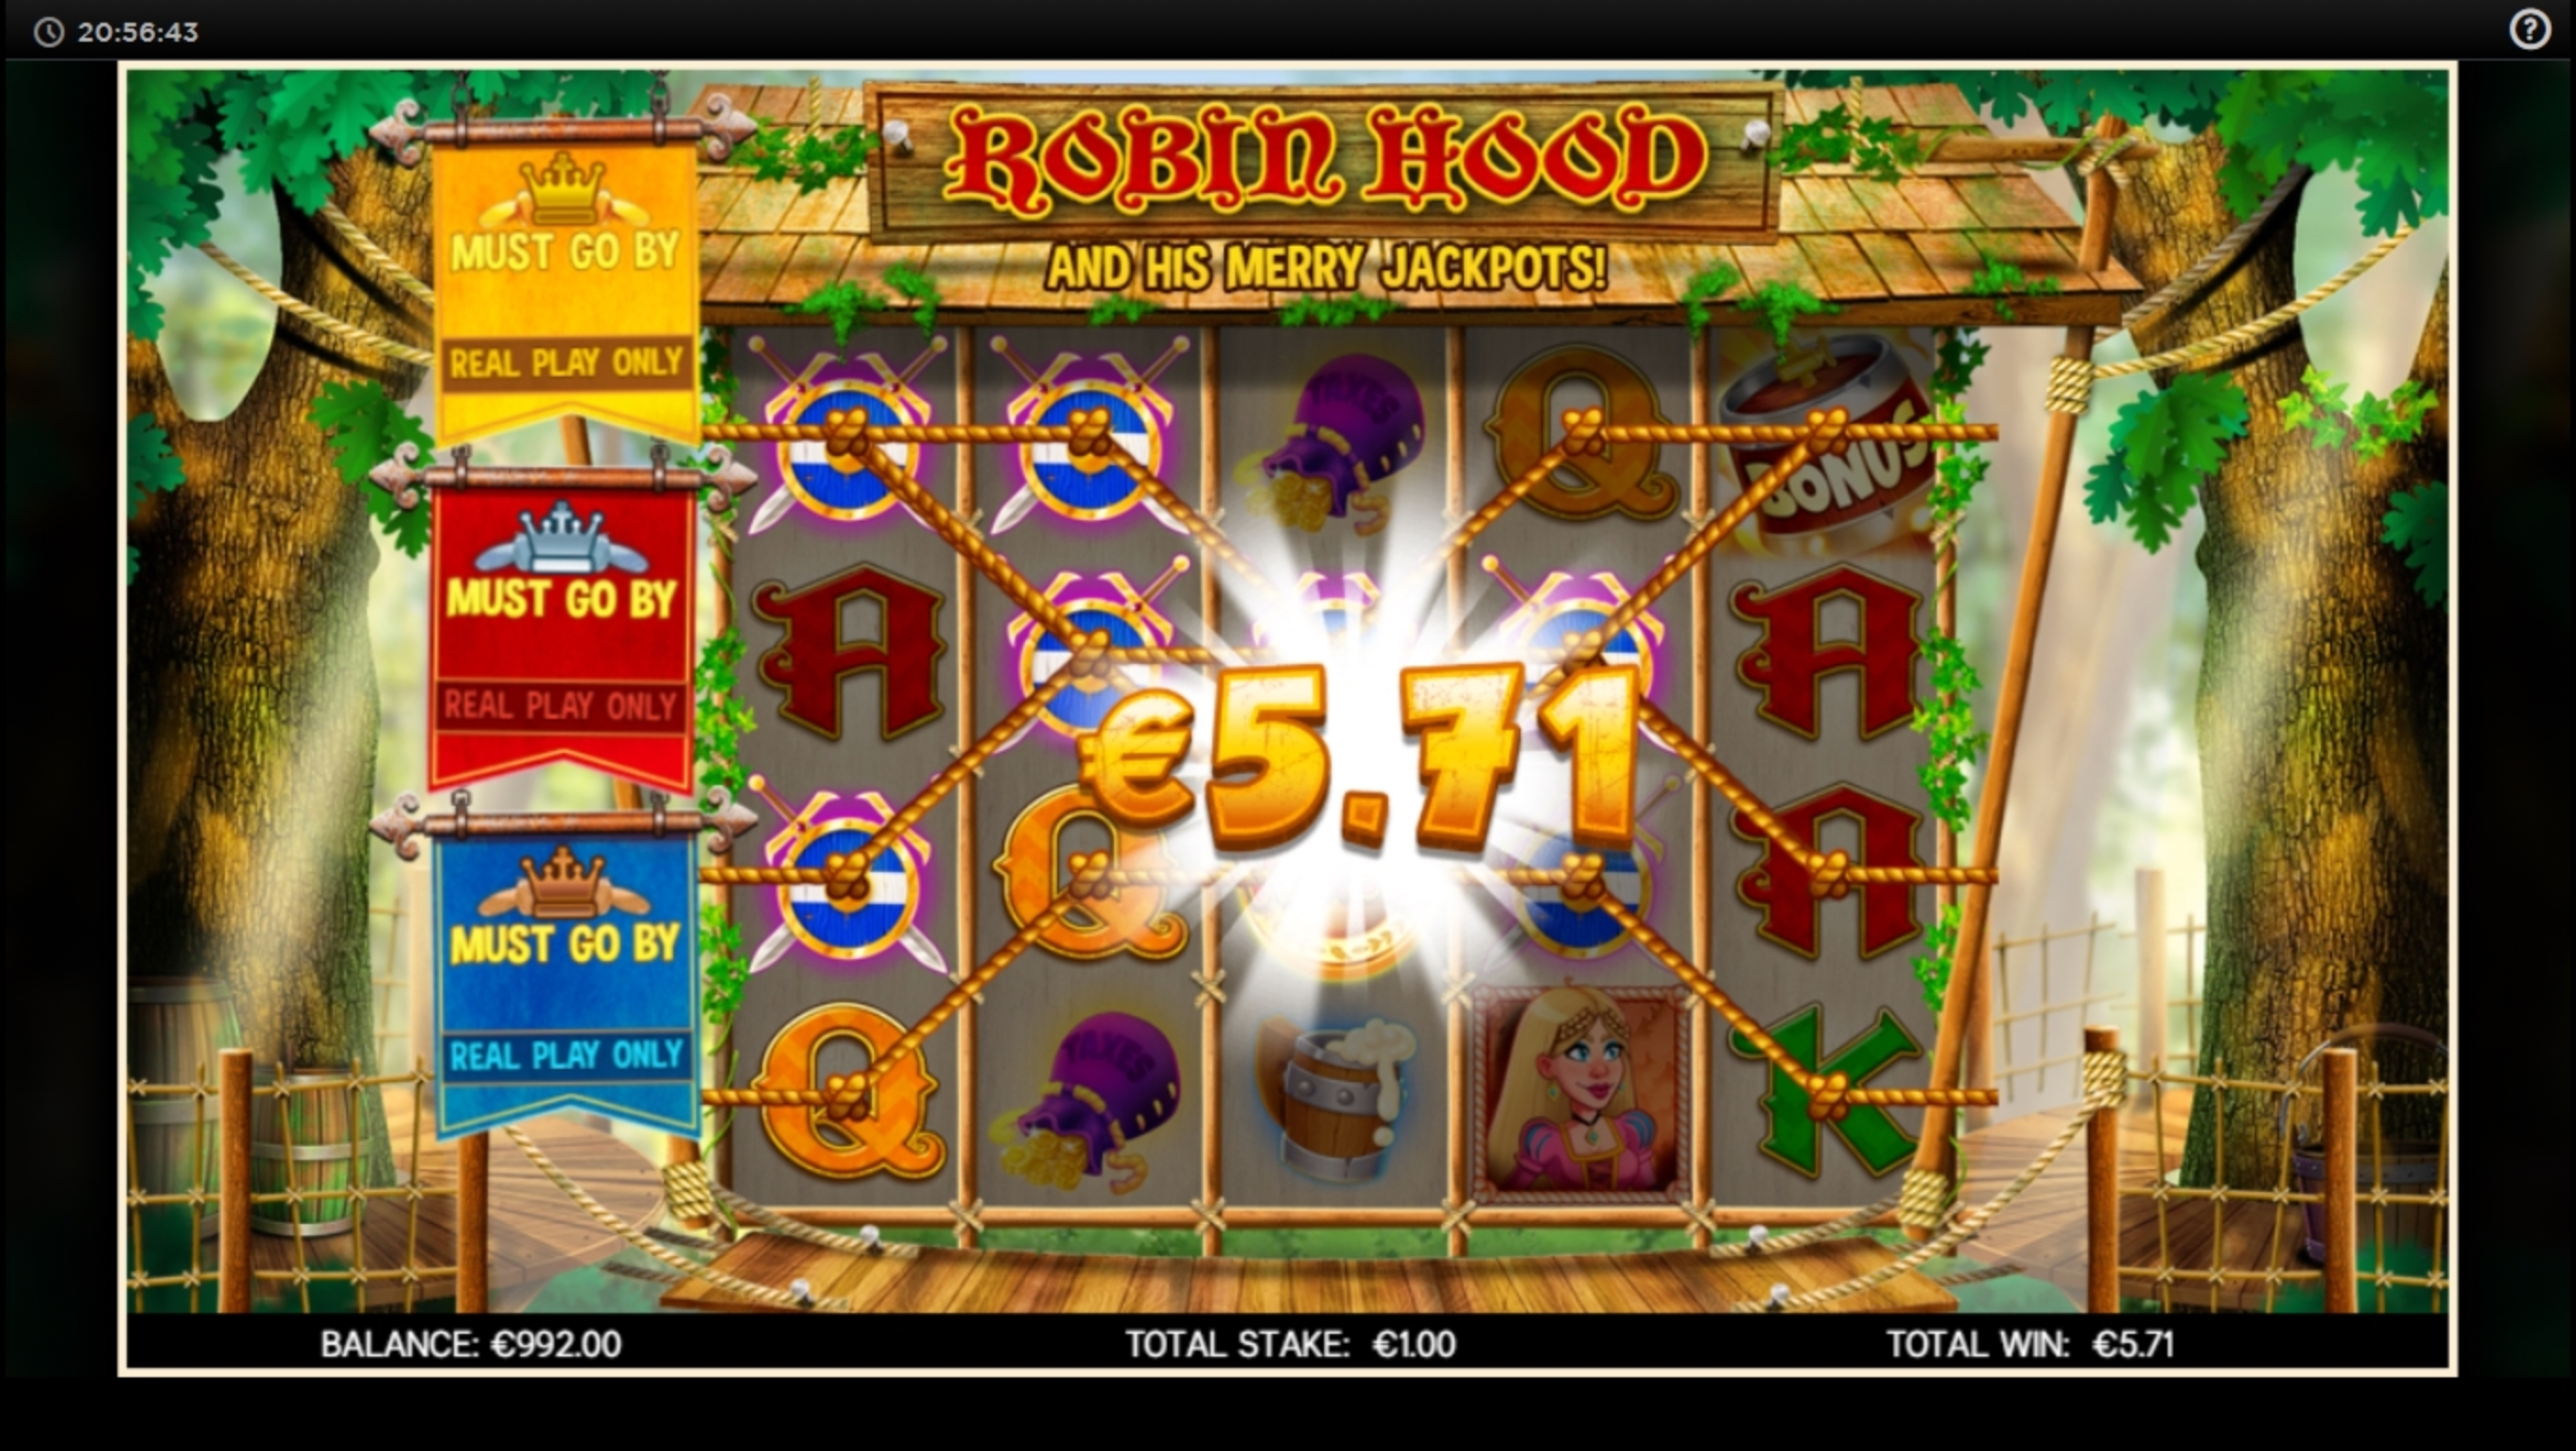 Win Money in Robin Hood (CORE Gaming) Free Slot Game by CORE Gaming